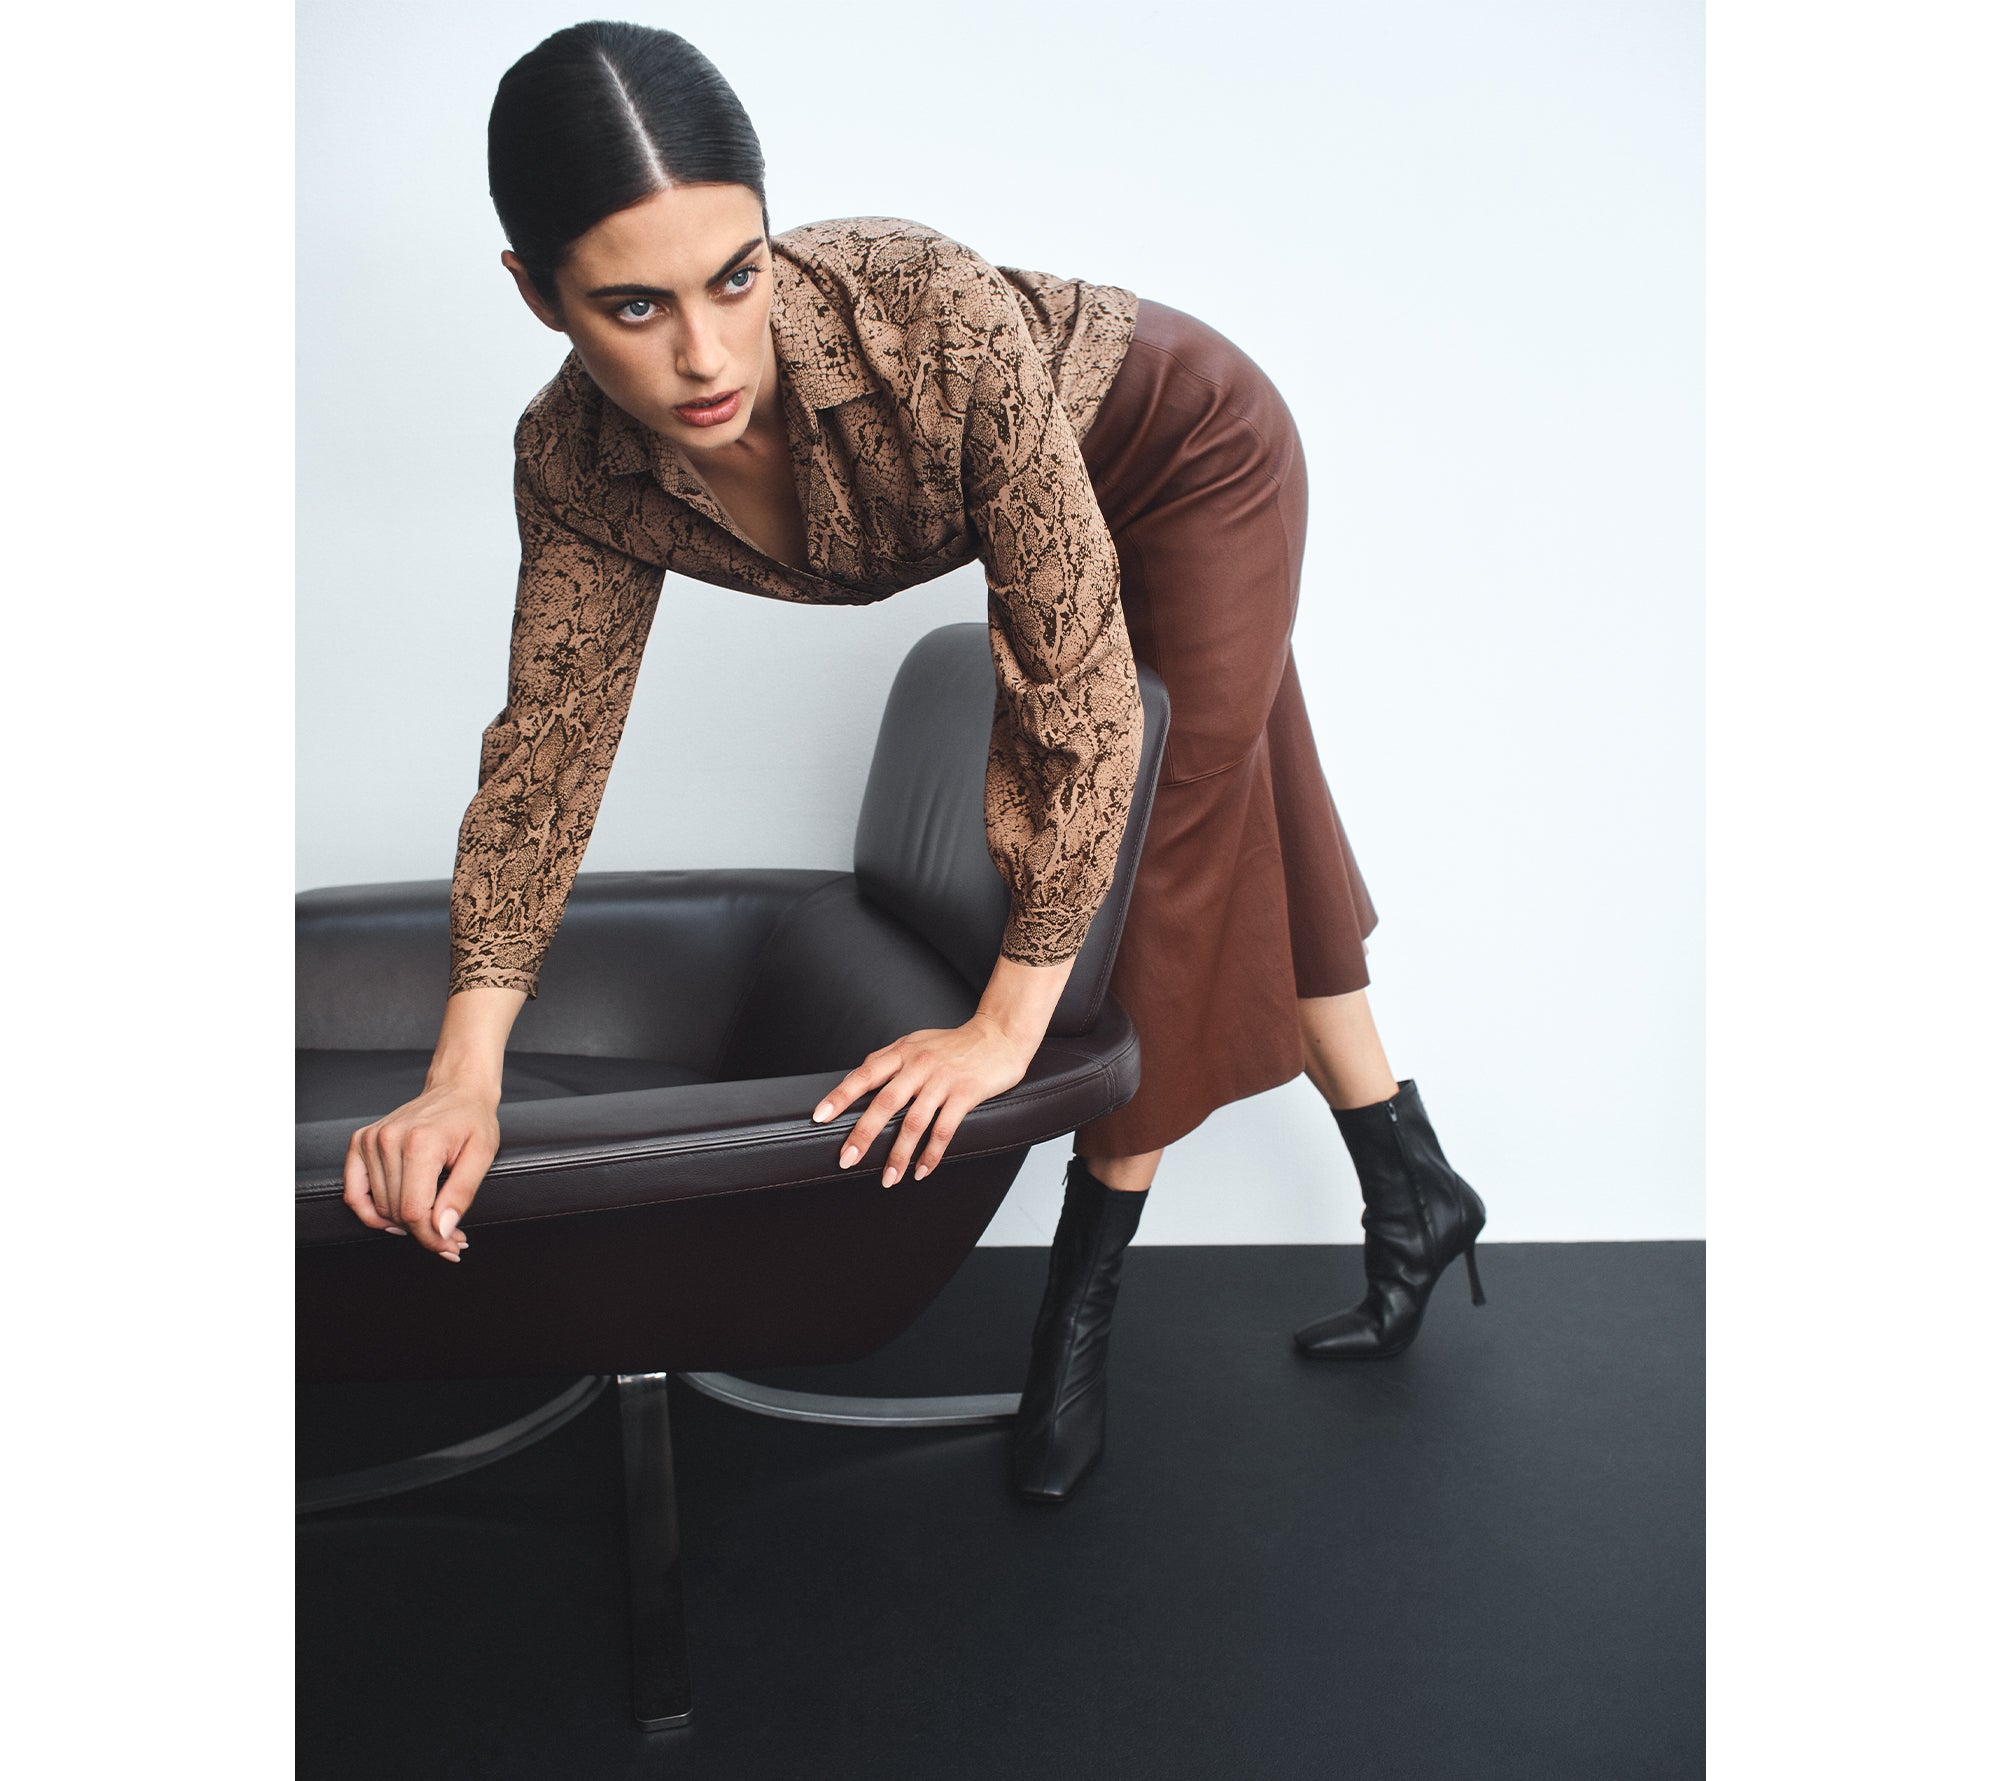 RAILS Noemi Shirt and LUXE DELUXE Pure Iconic Stretch Leather Midi Skirt in Cocoa